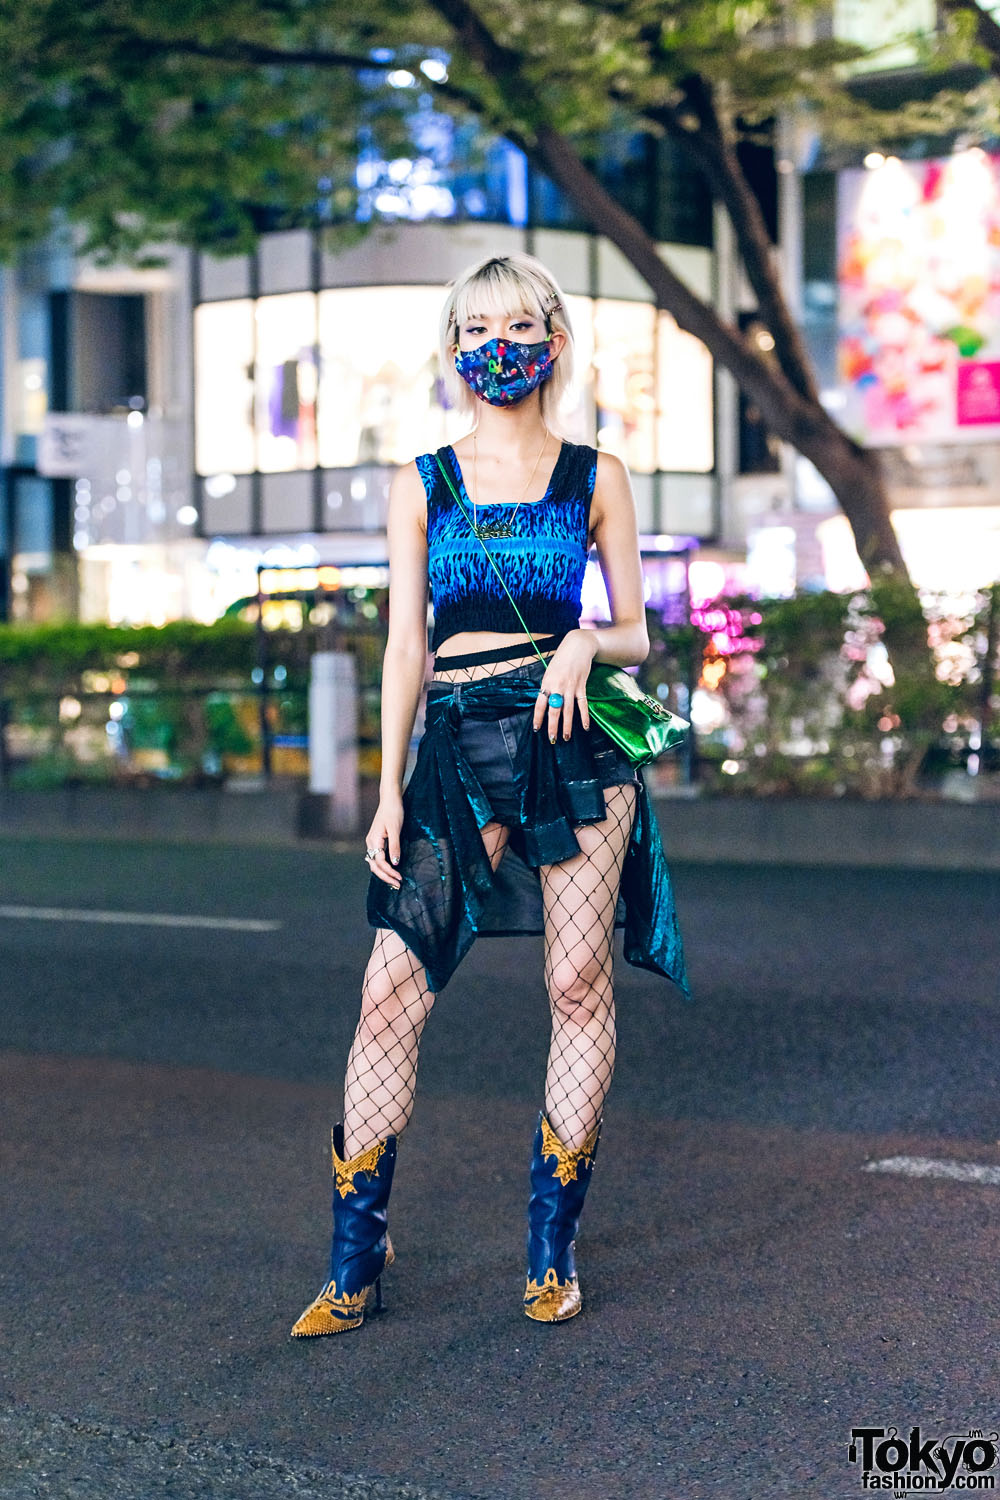 Harajuku Street Style w/ Bluesis Crop Top, Scarf Skirt Over Shorts, Fishnets, Tender Person & Yello Cowboy Boots